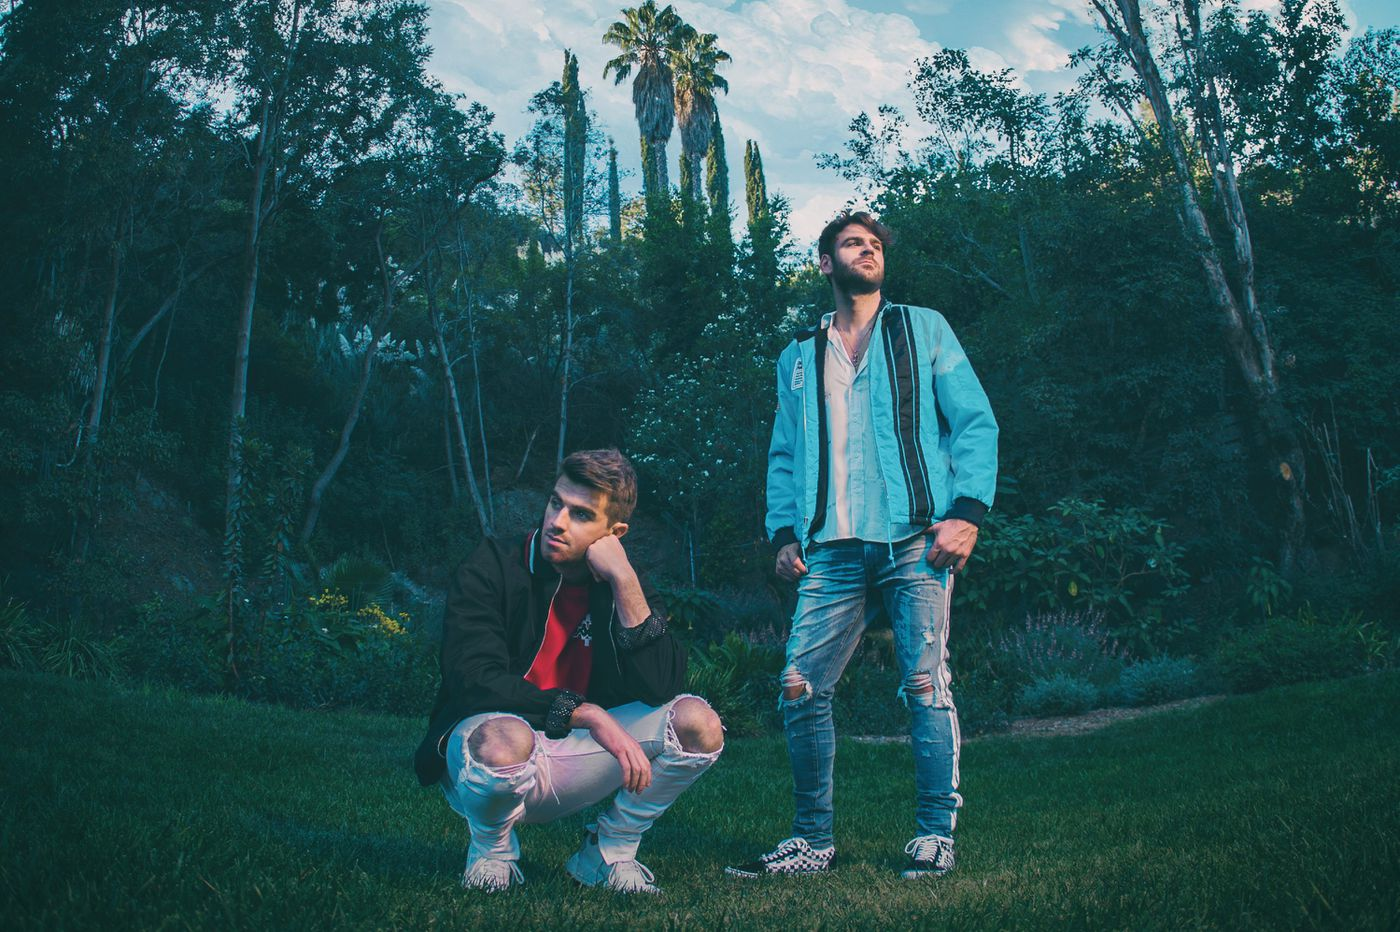 Are The Chainsmokers growing up?